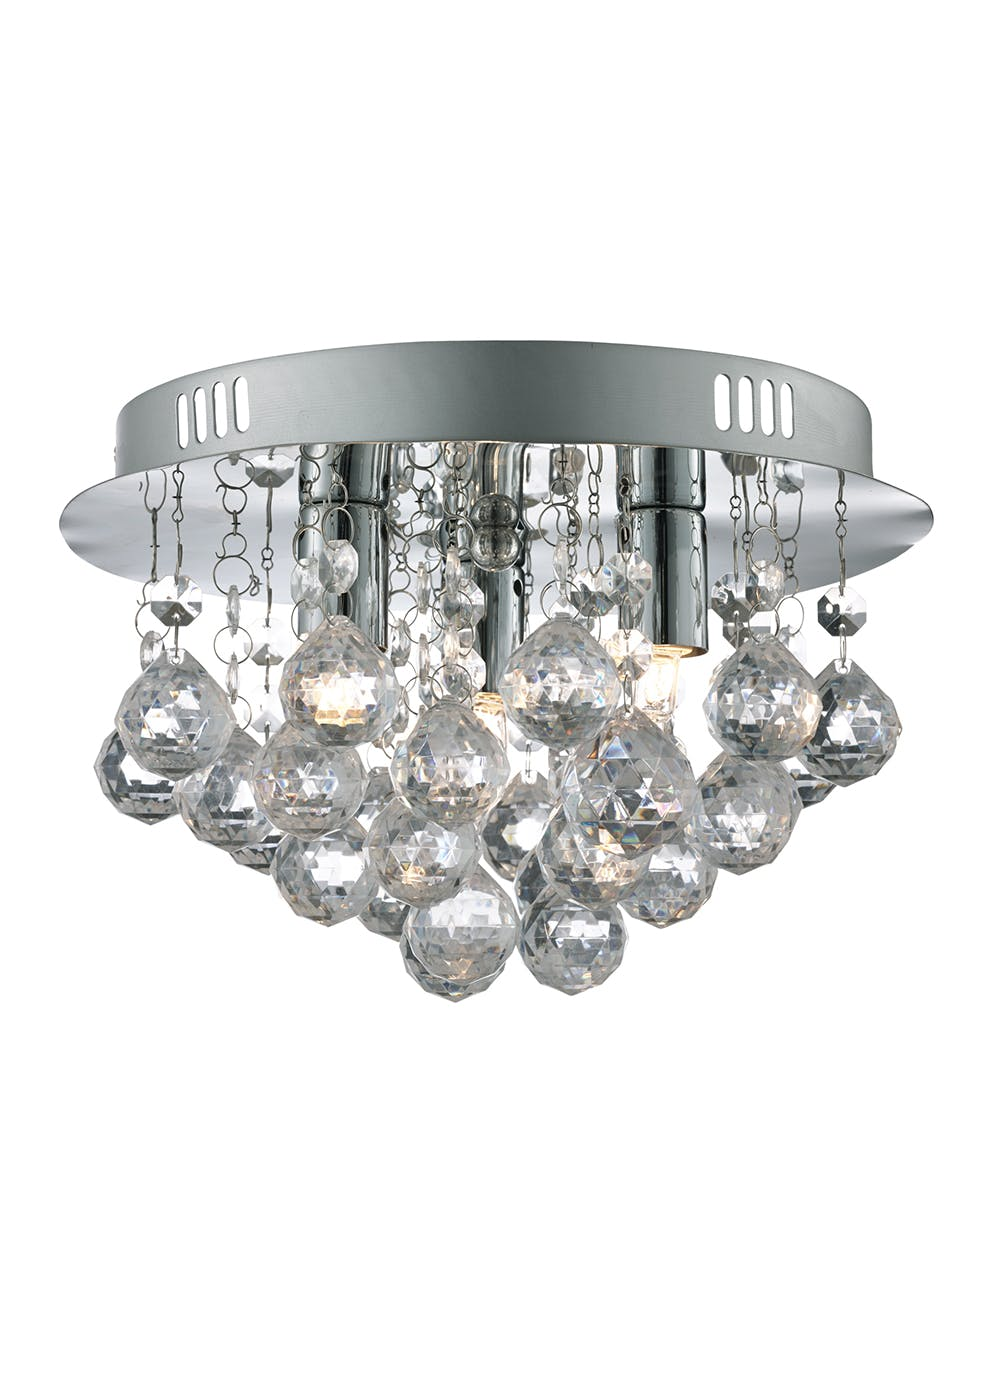 ashley large pendant view chandeliers invt laura vienna uk lights ceiling regular resp